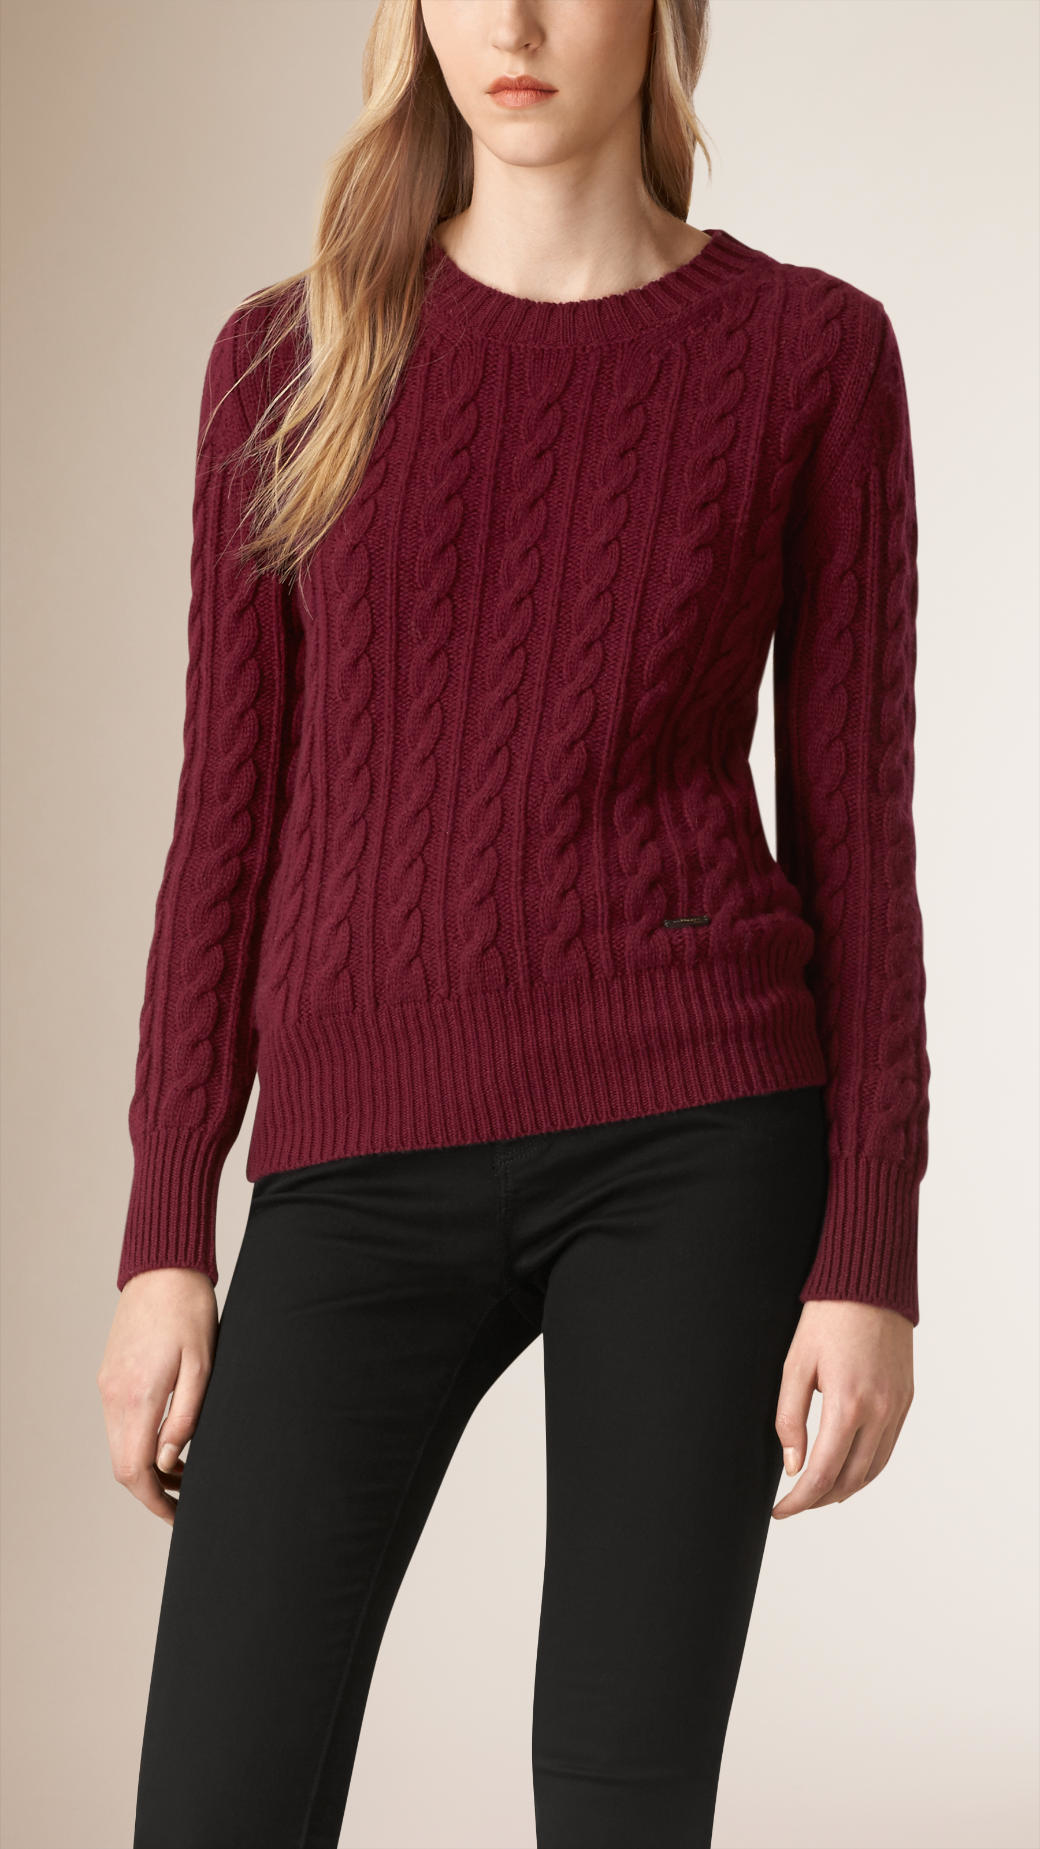 Wool Sweater Grey: Burberry Cable Knit Wool Cashmere Sweater Damson